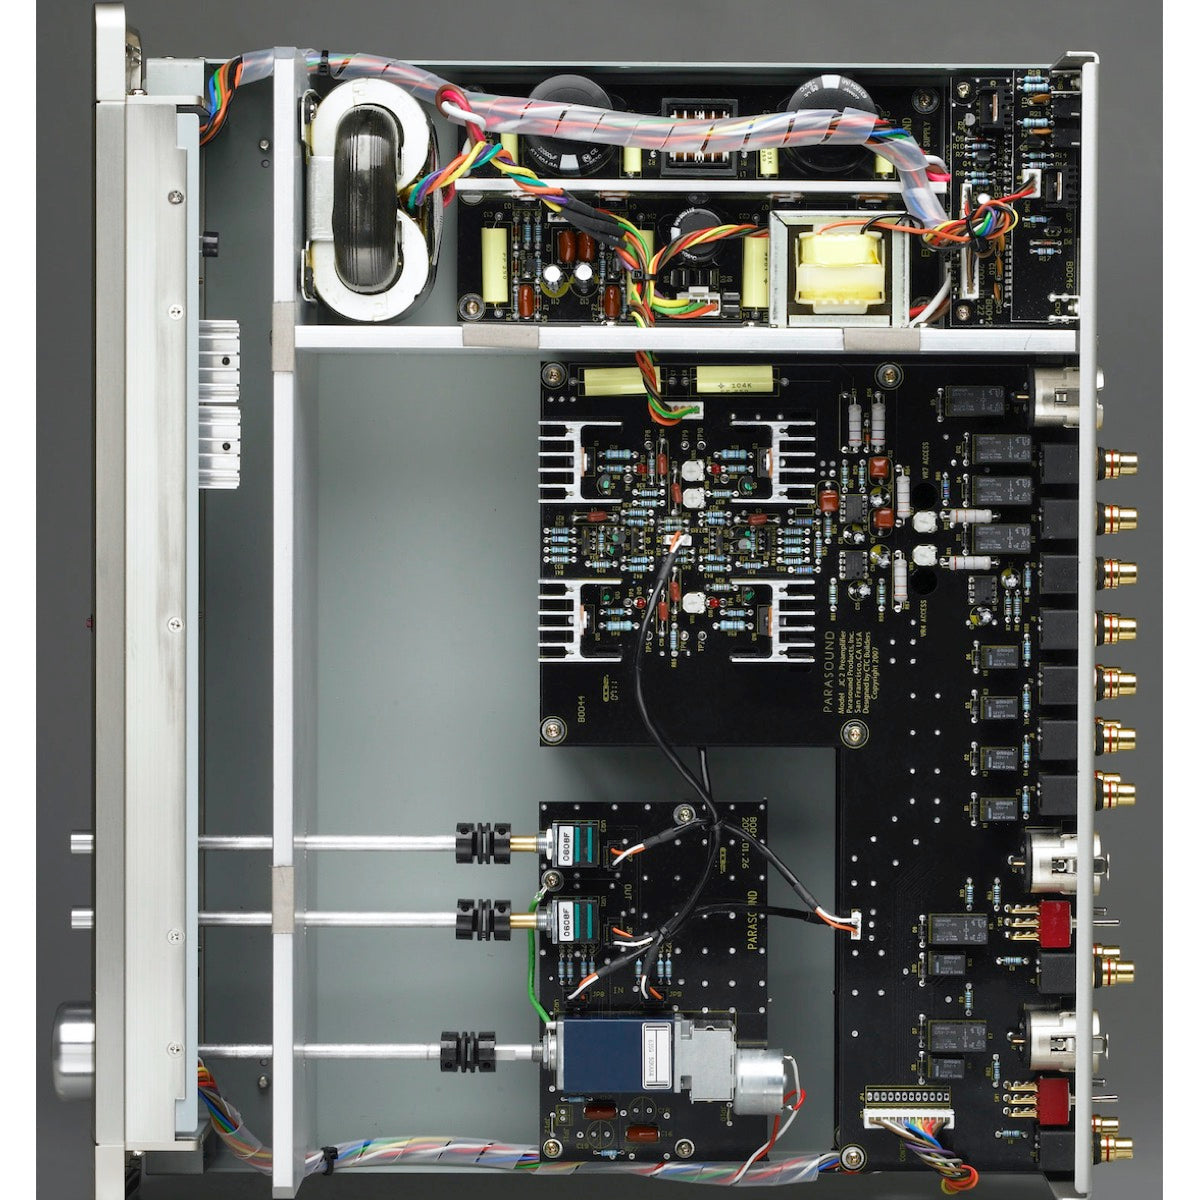 Parasound Halo JC 2 BP - Preamplifier with Bypass, Parasound, Preamplifier - AVStore.in